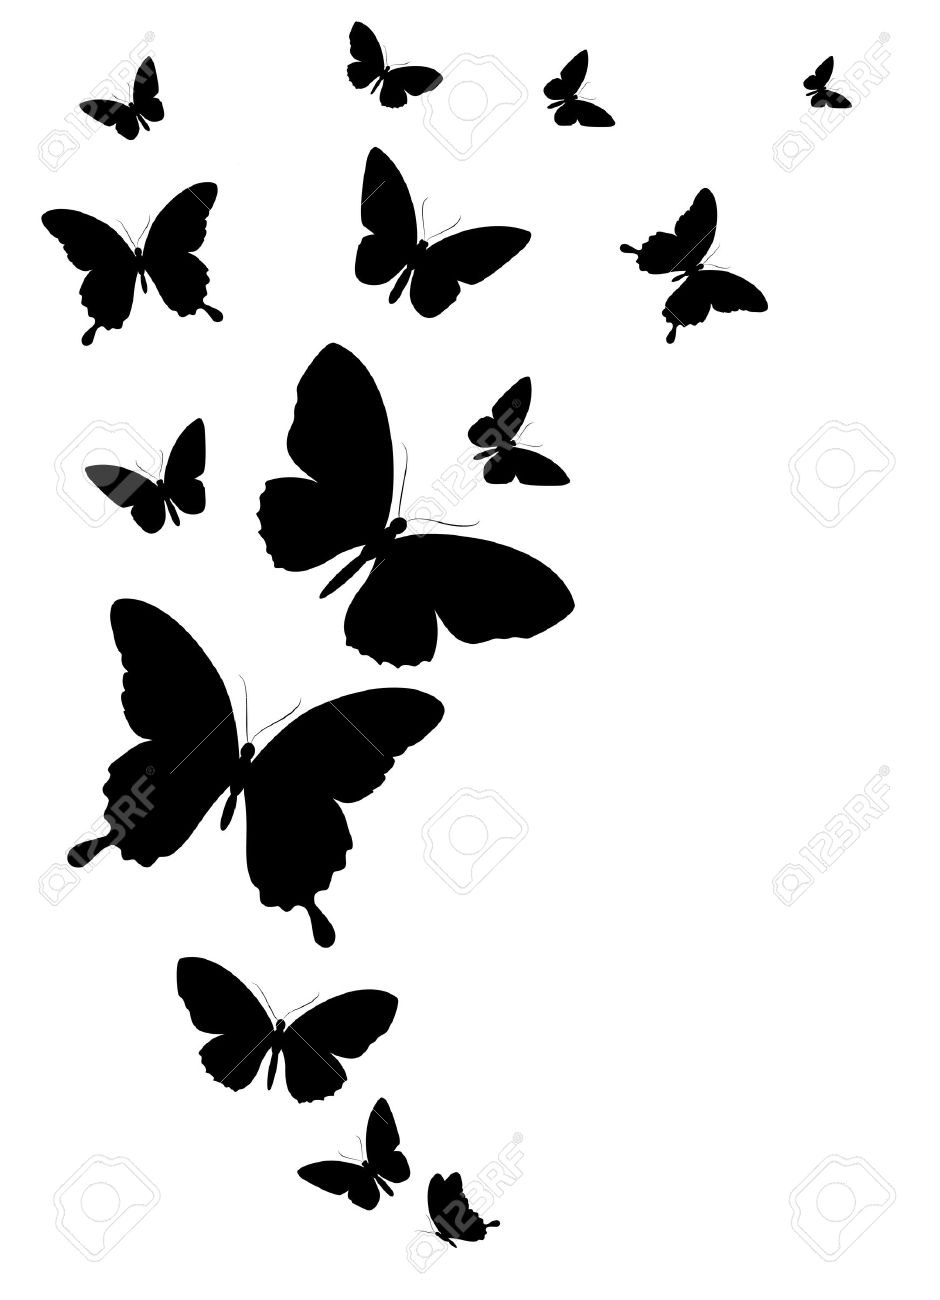 940x1300 Butterfly Designs Black And White. Butterfly Silhouette